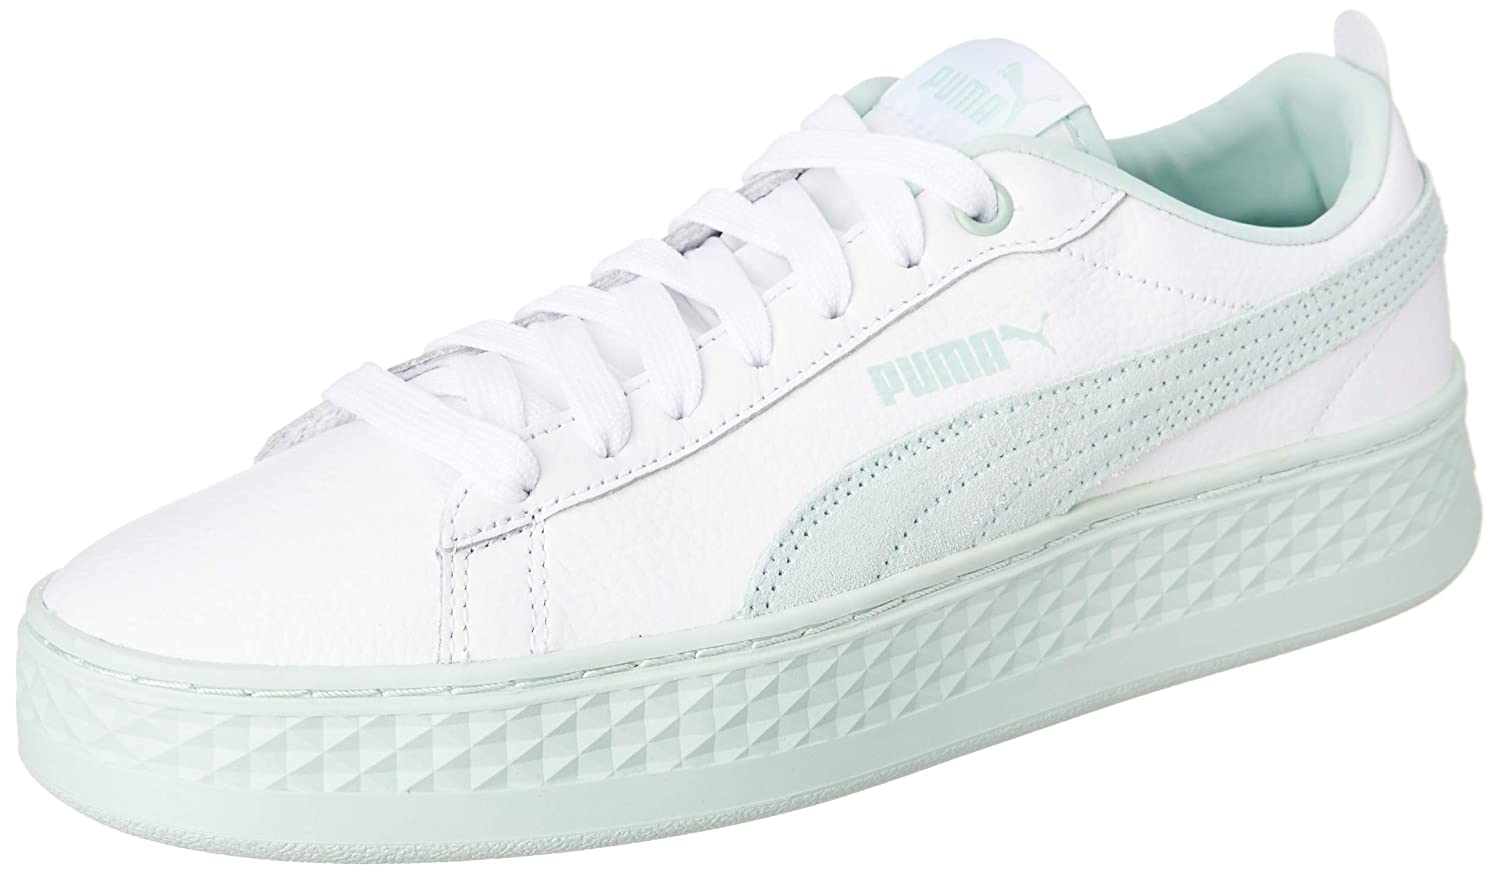 ff2bc99f067e8 Puma Women's Smash Platform L Leather Sneakers: Buy Online at Low Prices in  India - Amazon.in